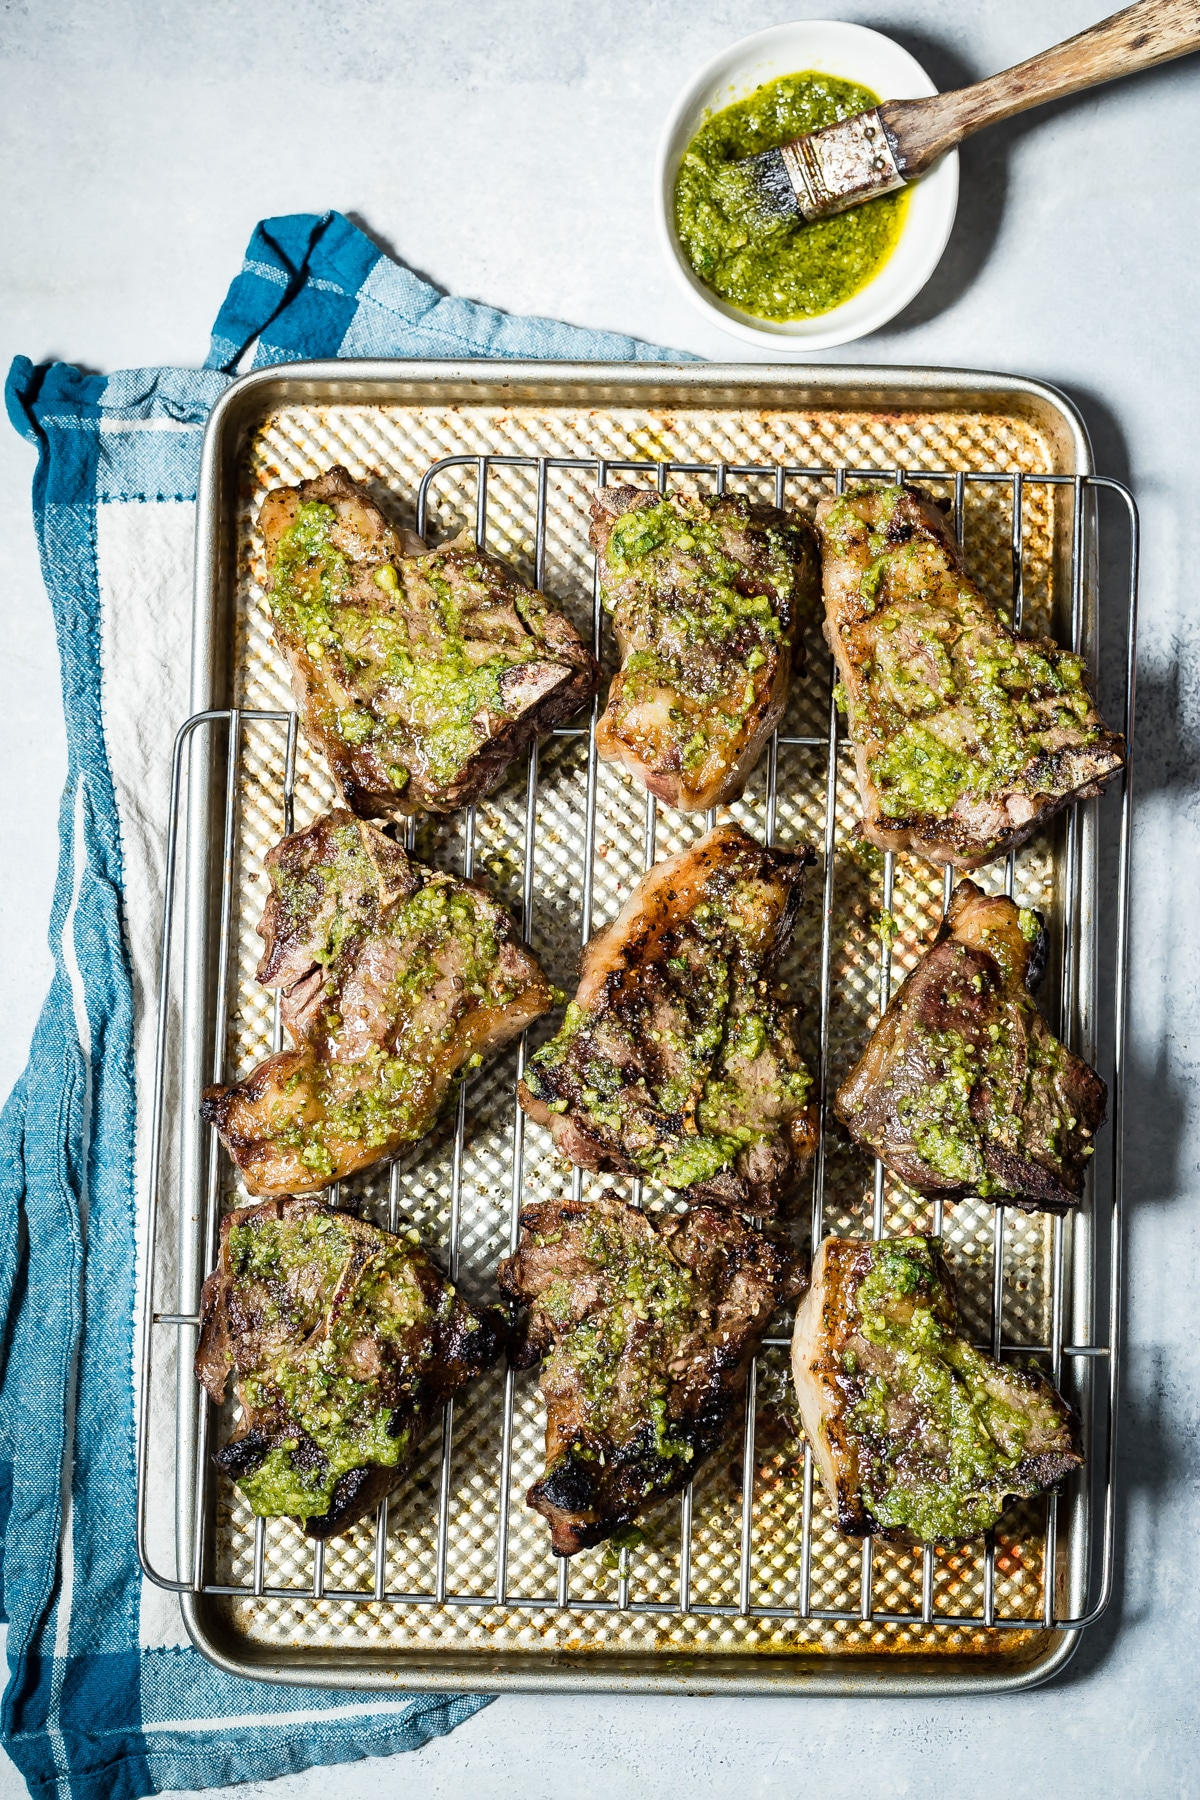 Cool Mom Eats weekly meal plan: Grilled Lamb Loin Chops with Mint Pesto at Foodness Gracious